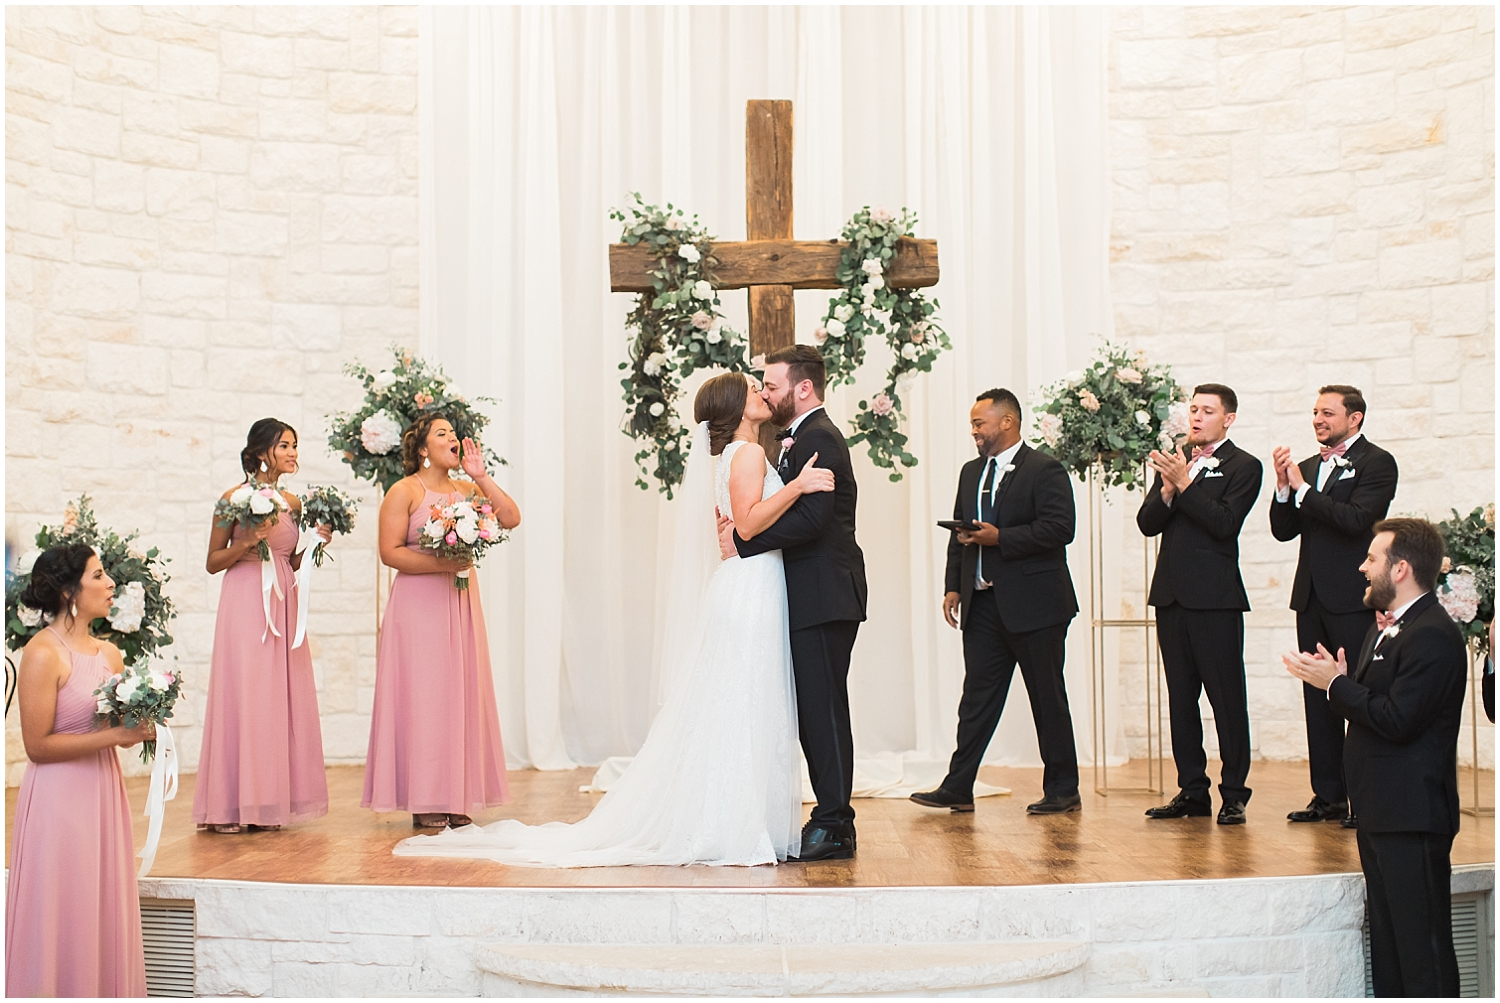 Bride and groom kiss at their Houston wedding ceremony